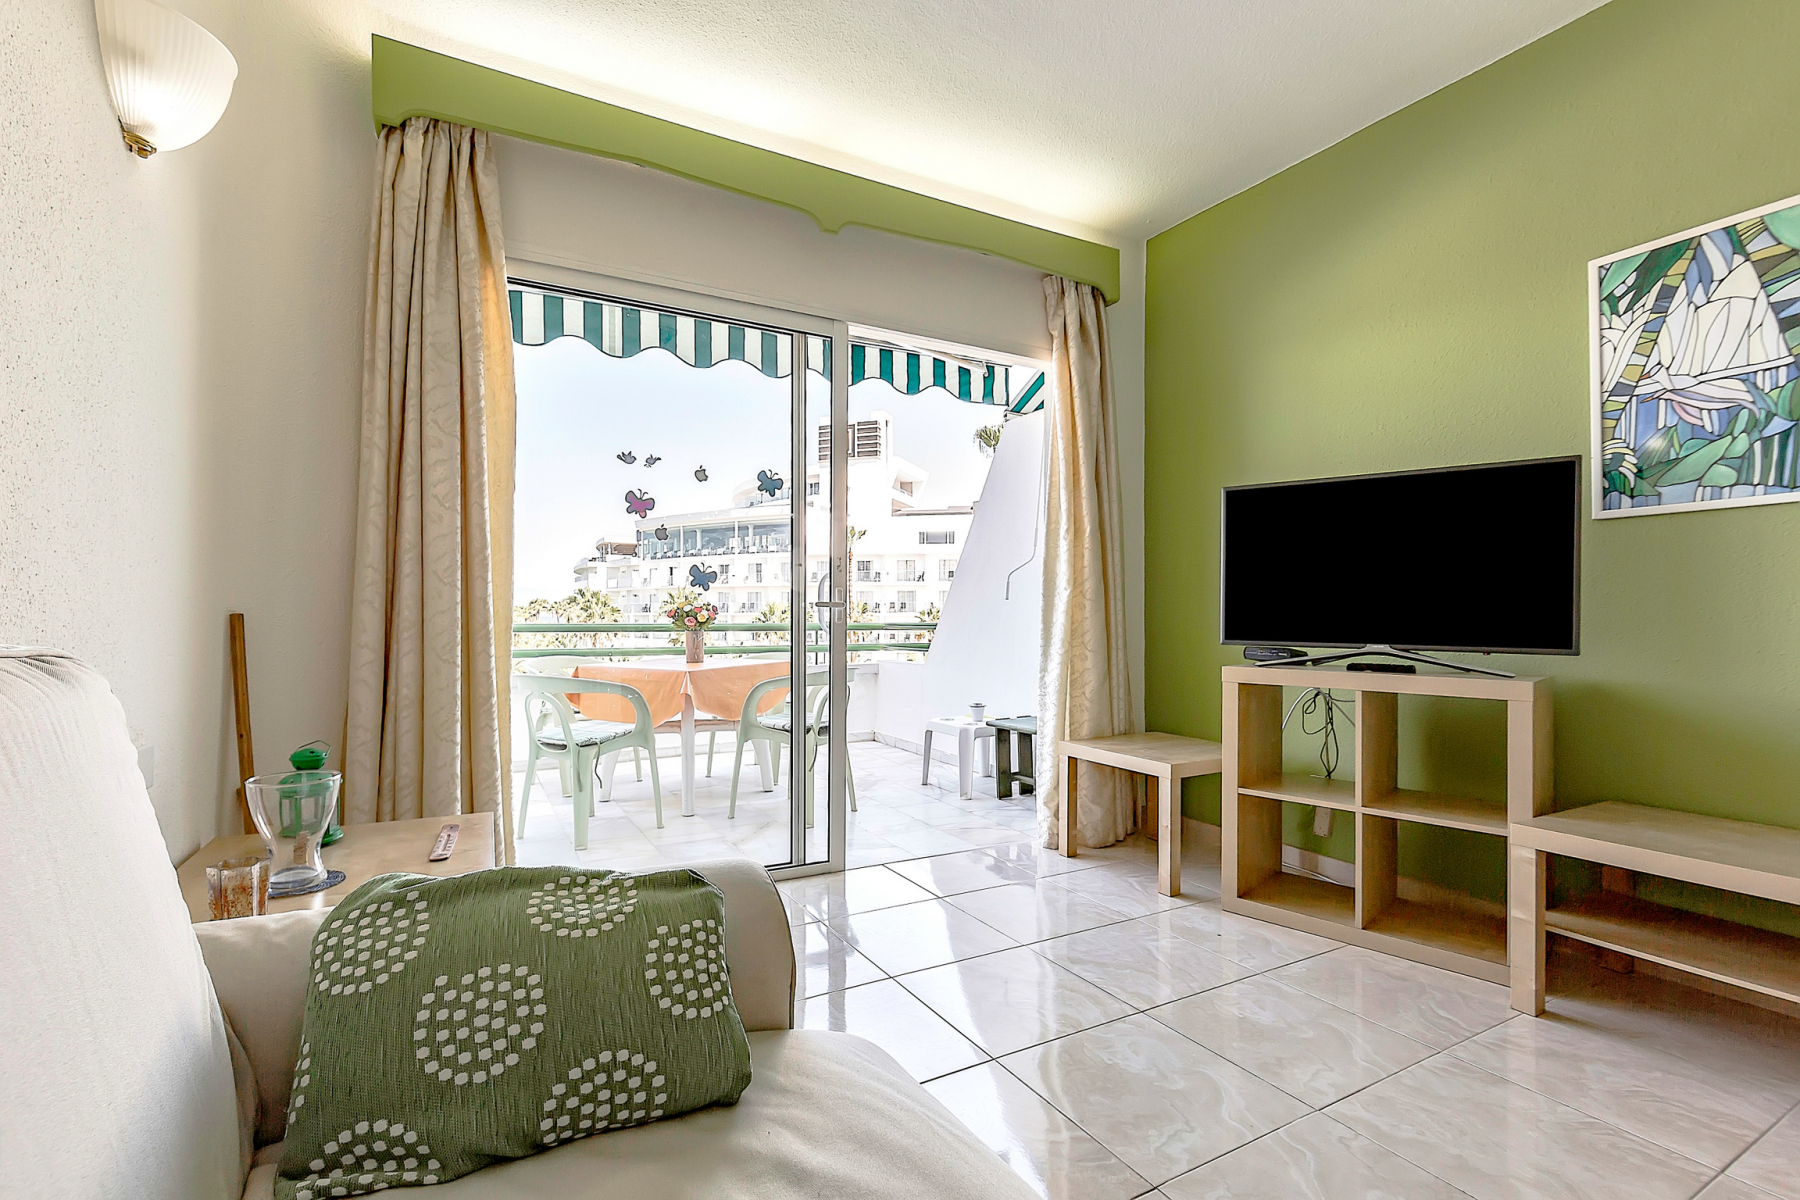 Properties for Sale in Tenerife, Canary Islands, Spain | SylkWayStar Real Estate. Lovely 1 Bedroom Apartment - Altamira. Image-25872